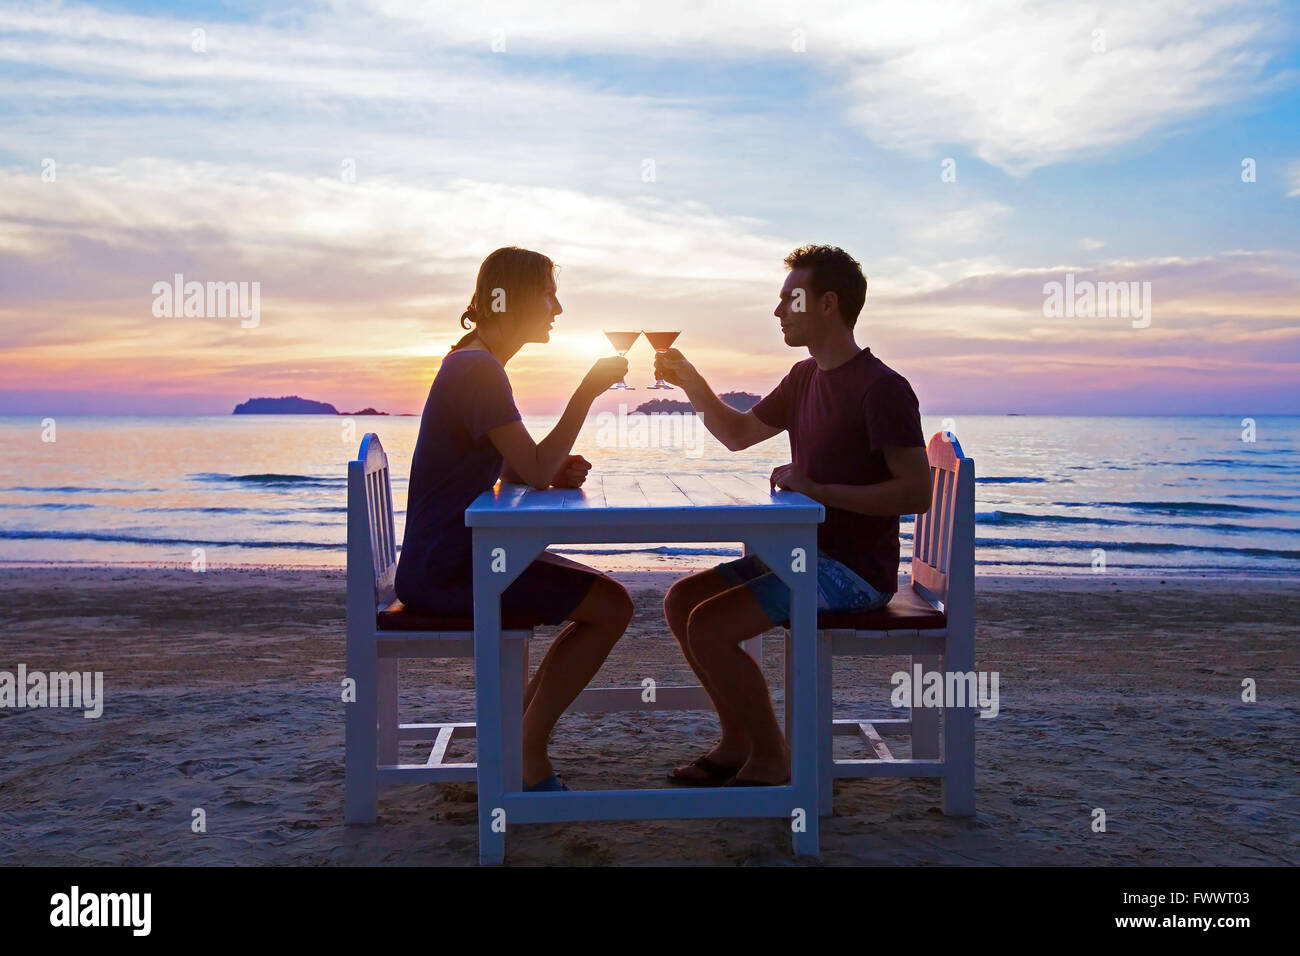 romantic dinner on the beach in luxury restaurant, couple on honeymoon drinking tropical cocktails at sunset - Stock Image